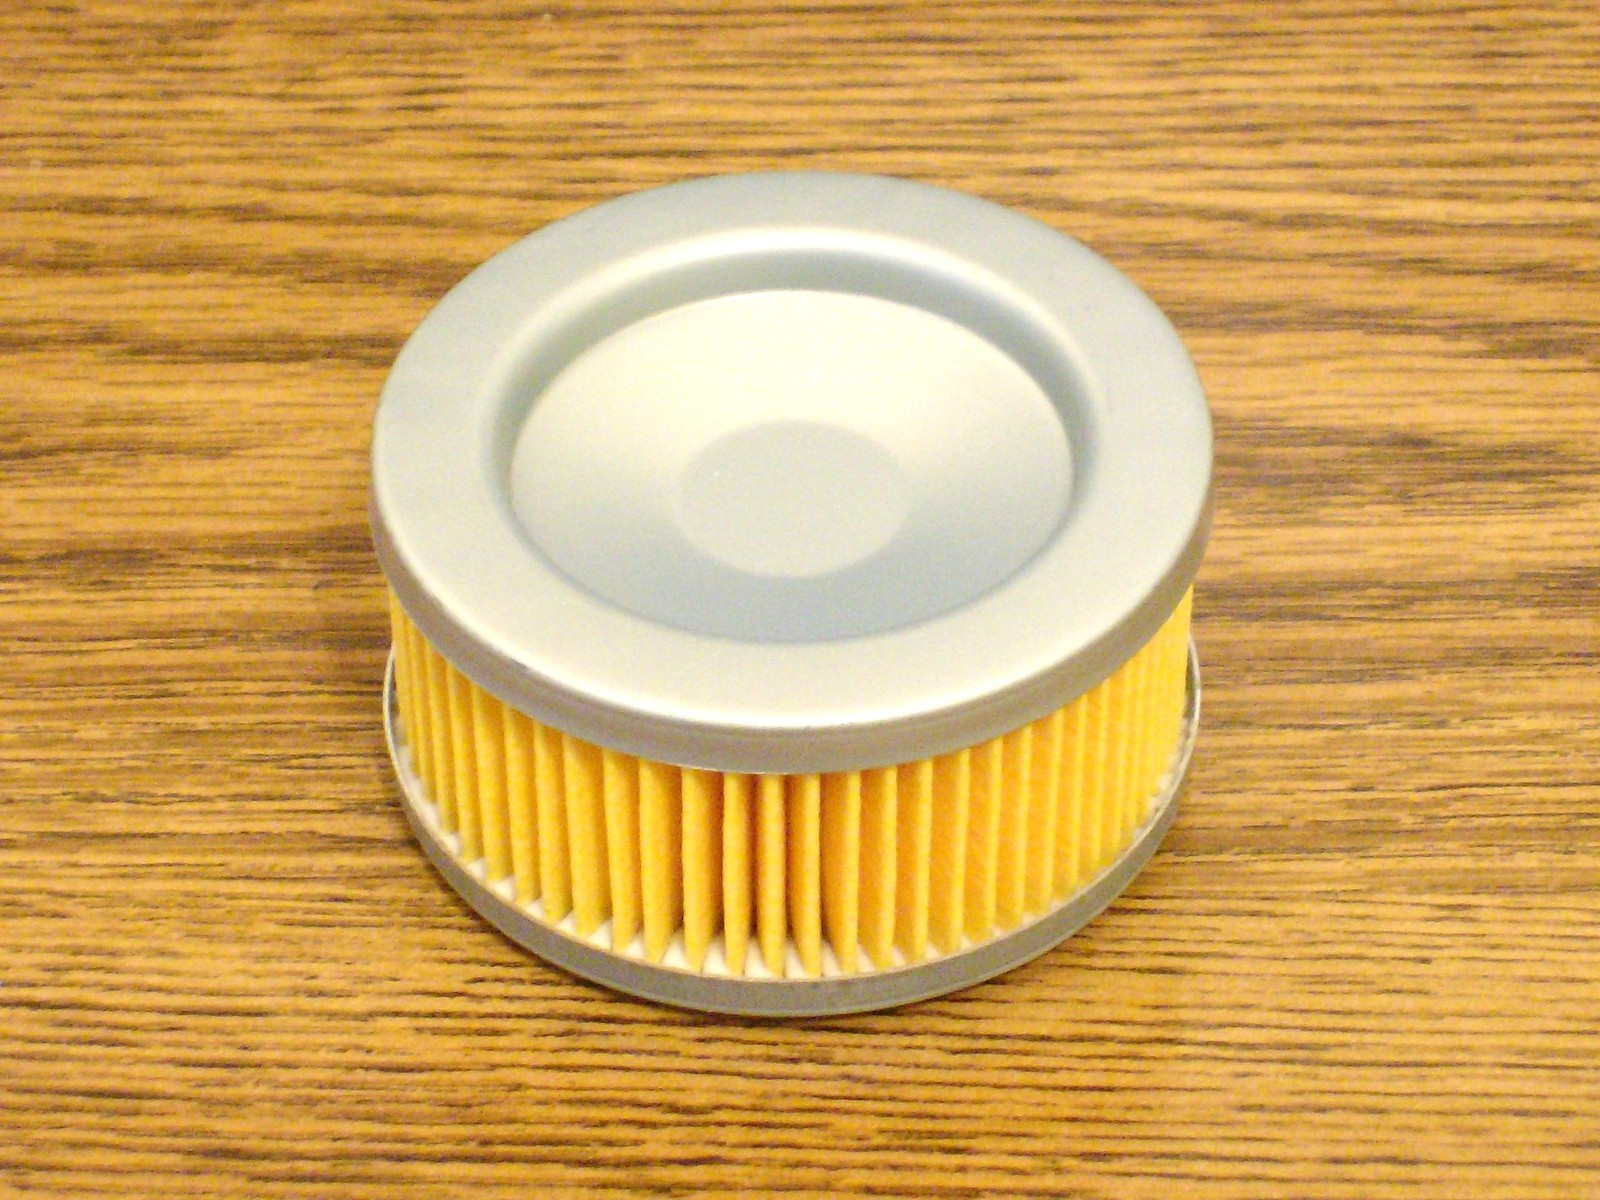 Stihl BR320 and BR400 Air Filter 4203 141 0300, 42031410300